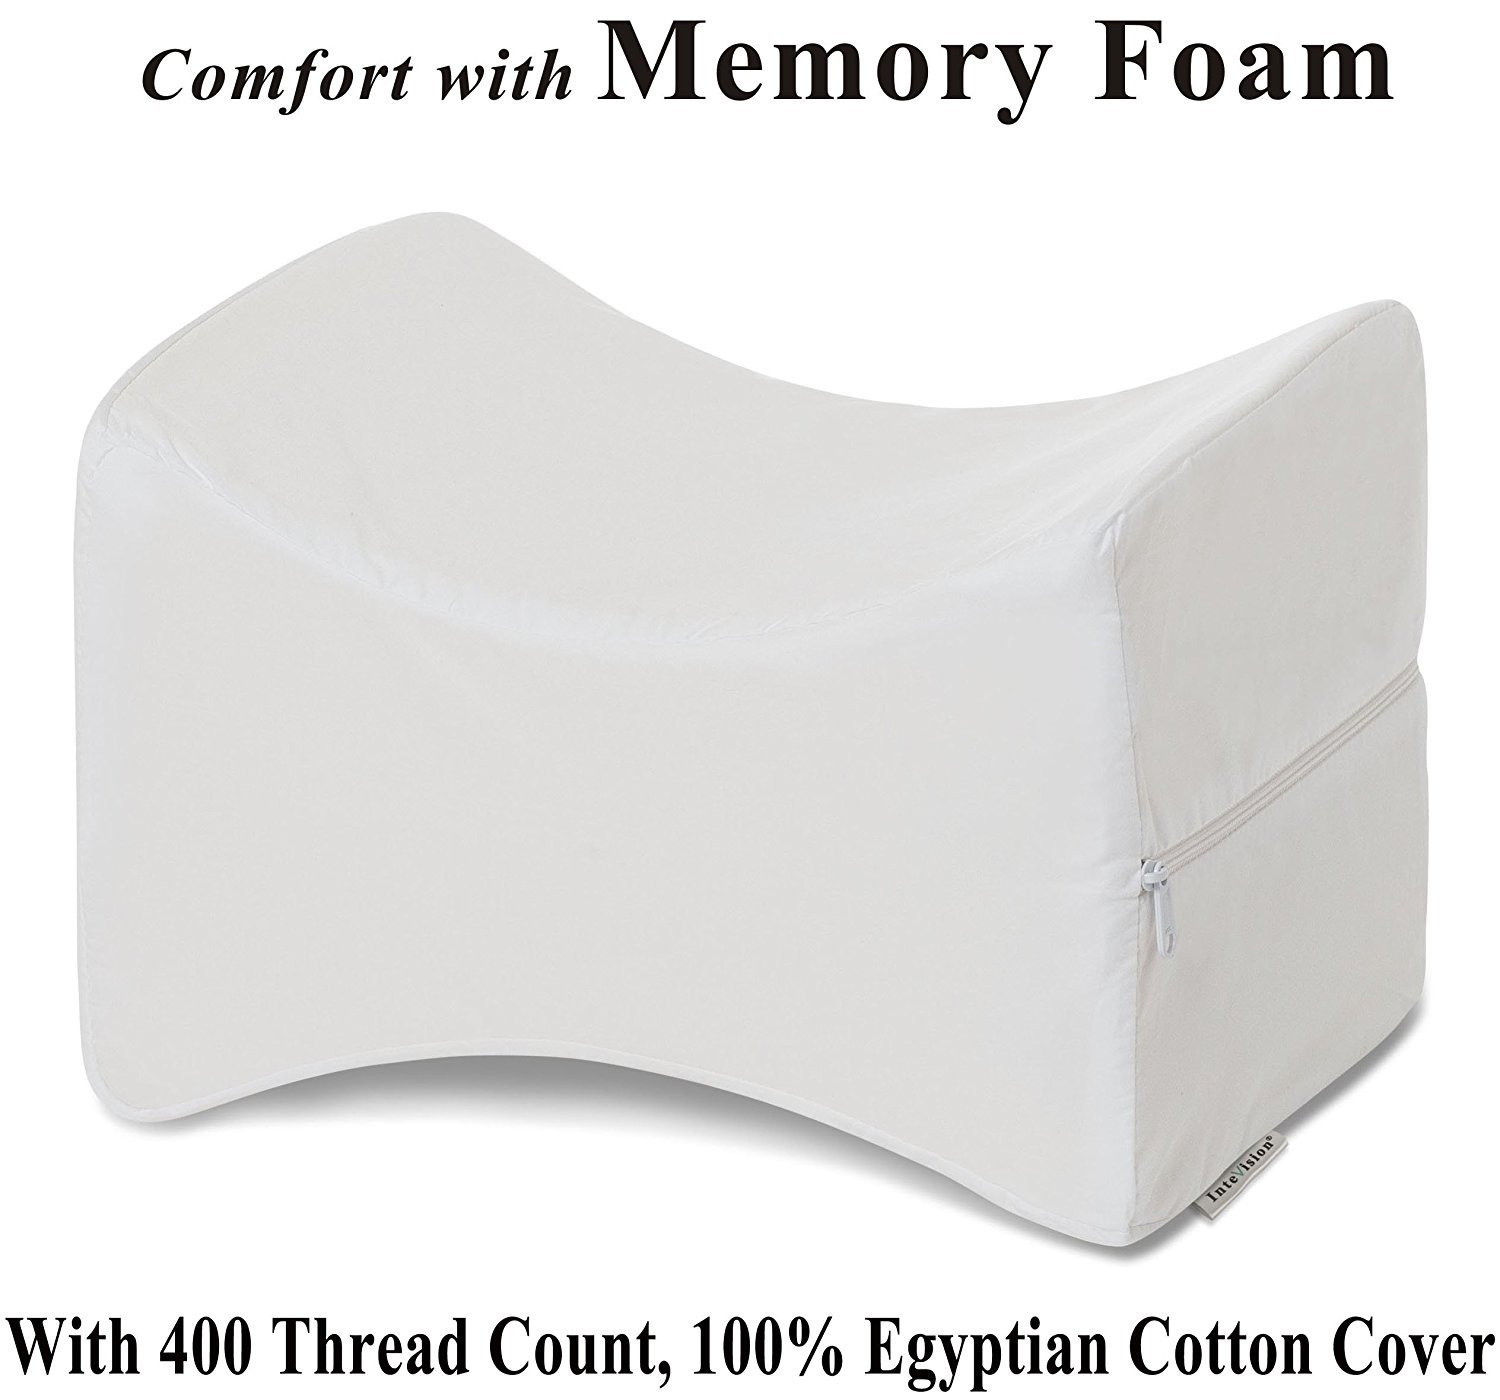 InteVision Knee Pillow with High Quality, Removable Cover CFP 39